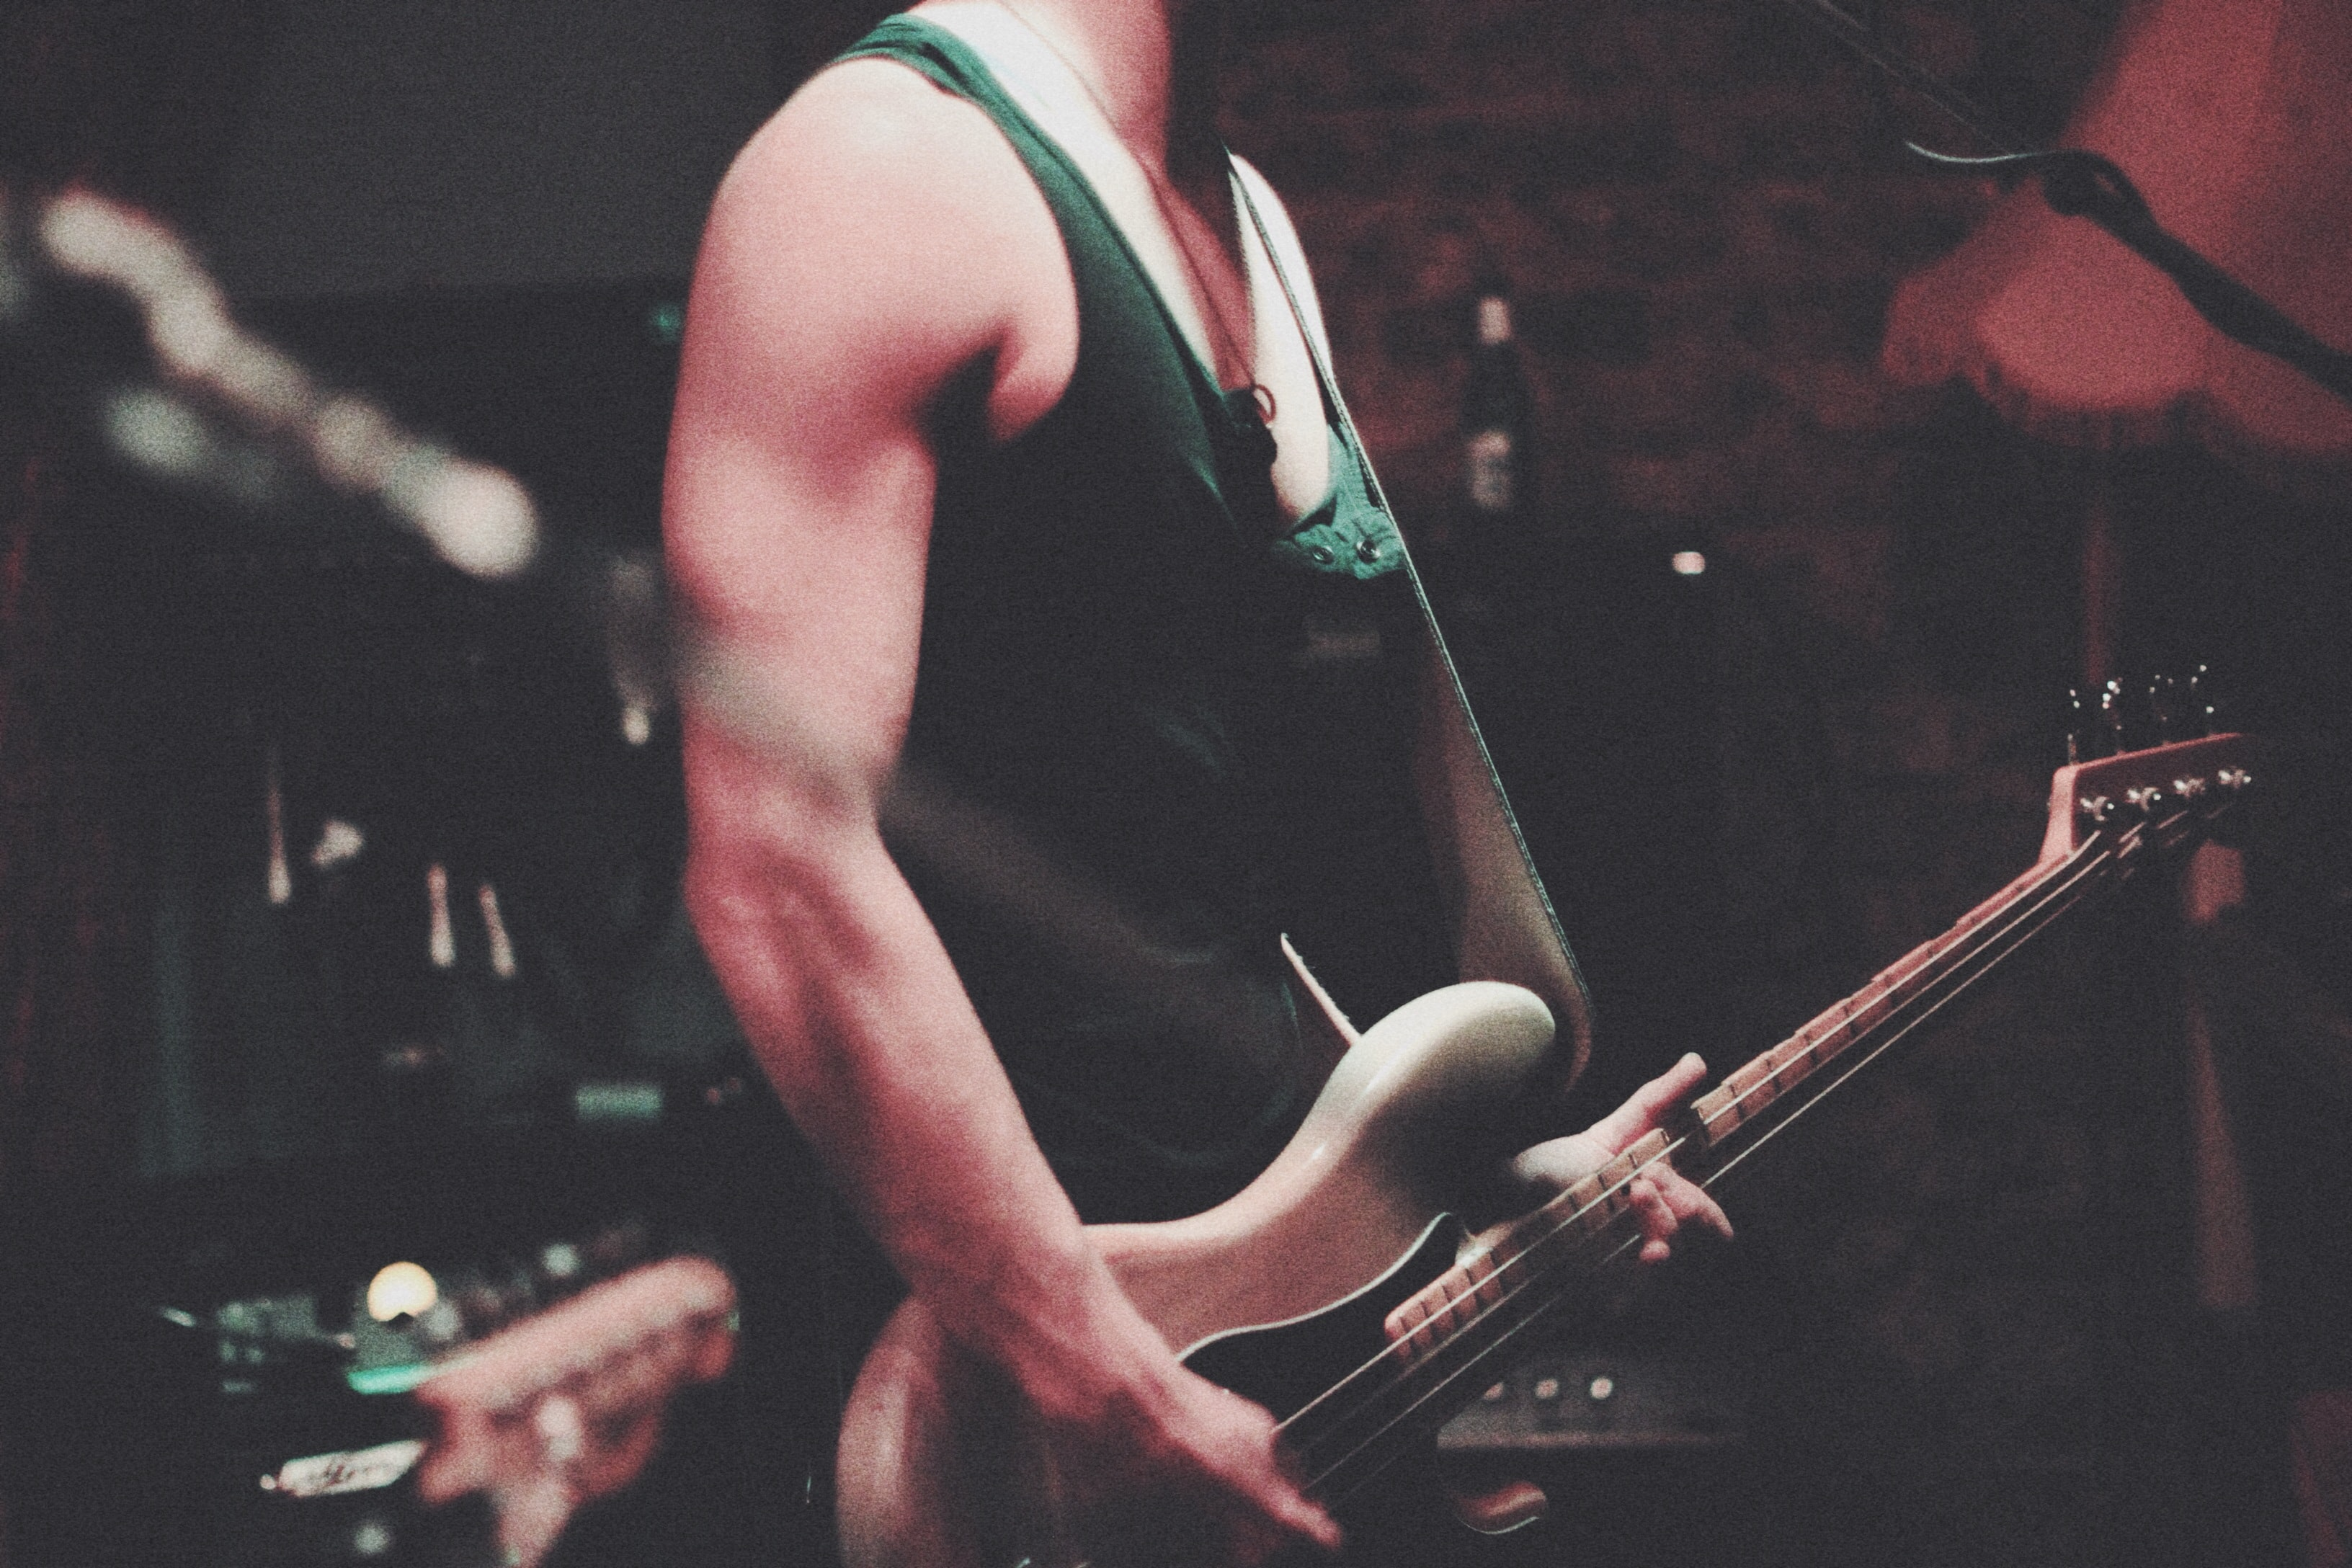 A fuzzy shot of a man with a white bass guitar